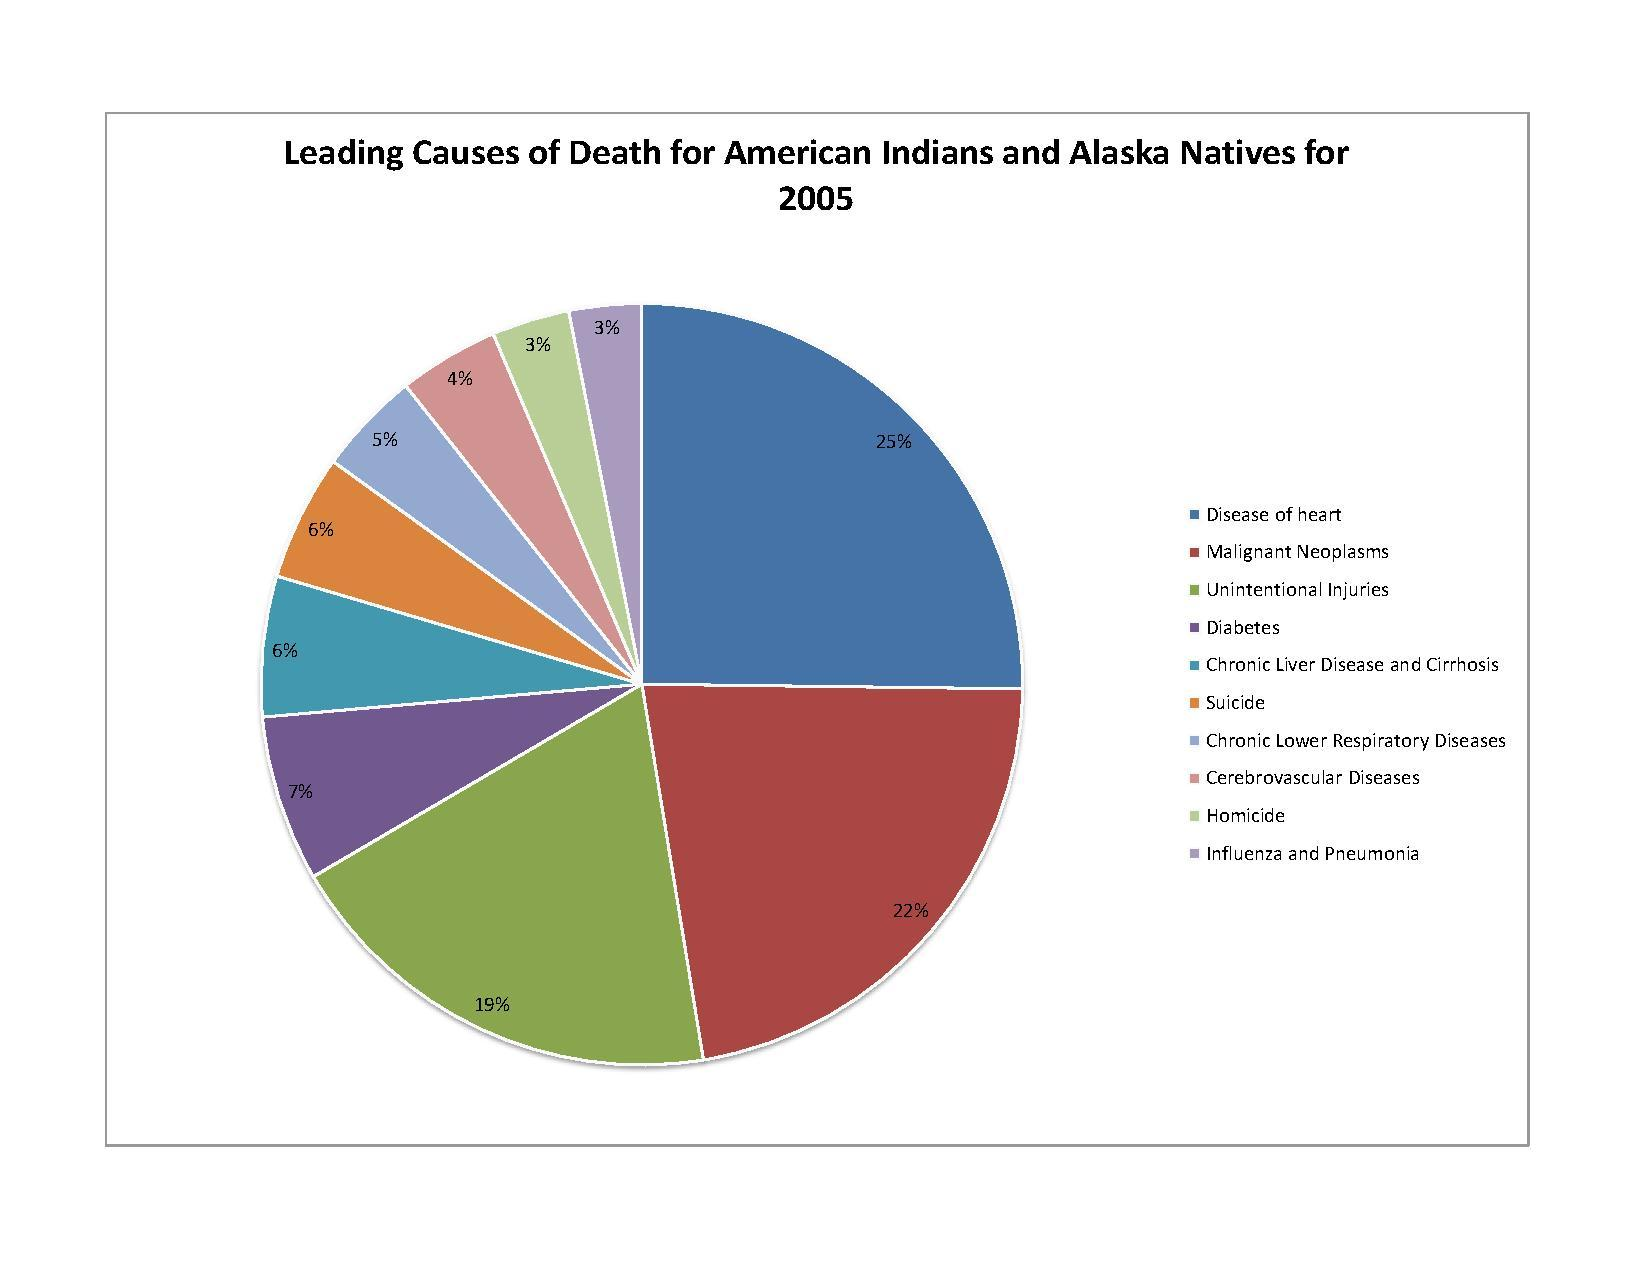 File:Leading Causes AIAN.pdf - Wikipedia